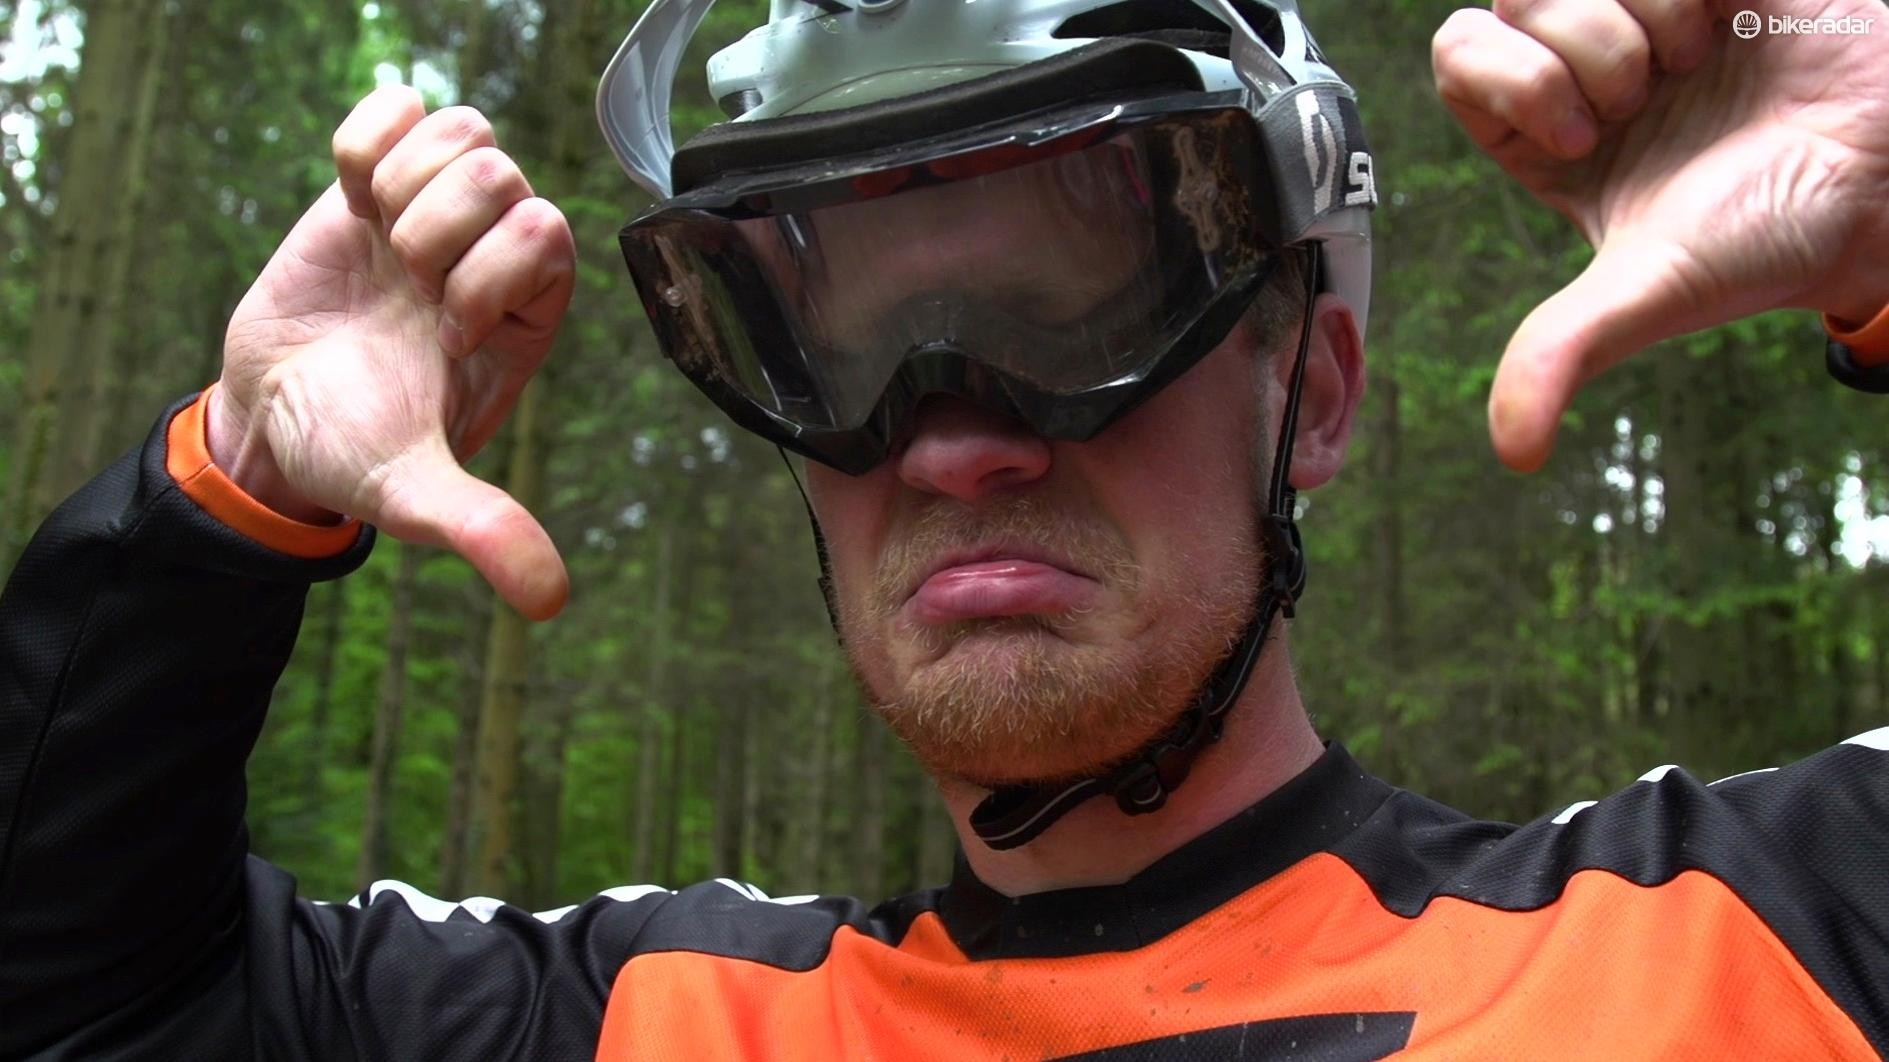 Sorry goggle users, if you shove them under your visor, you'll be disappointed